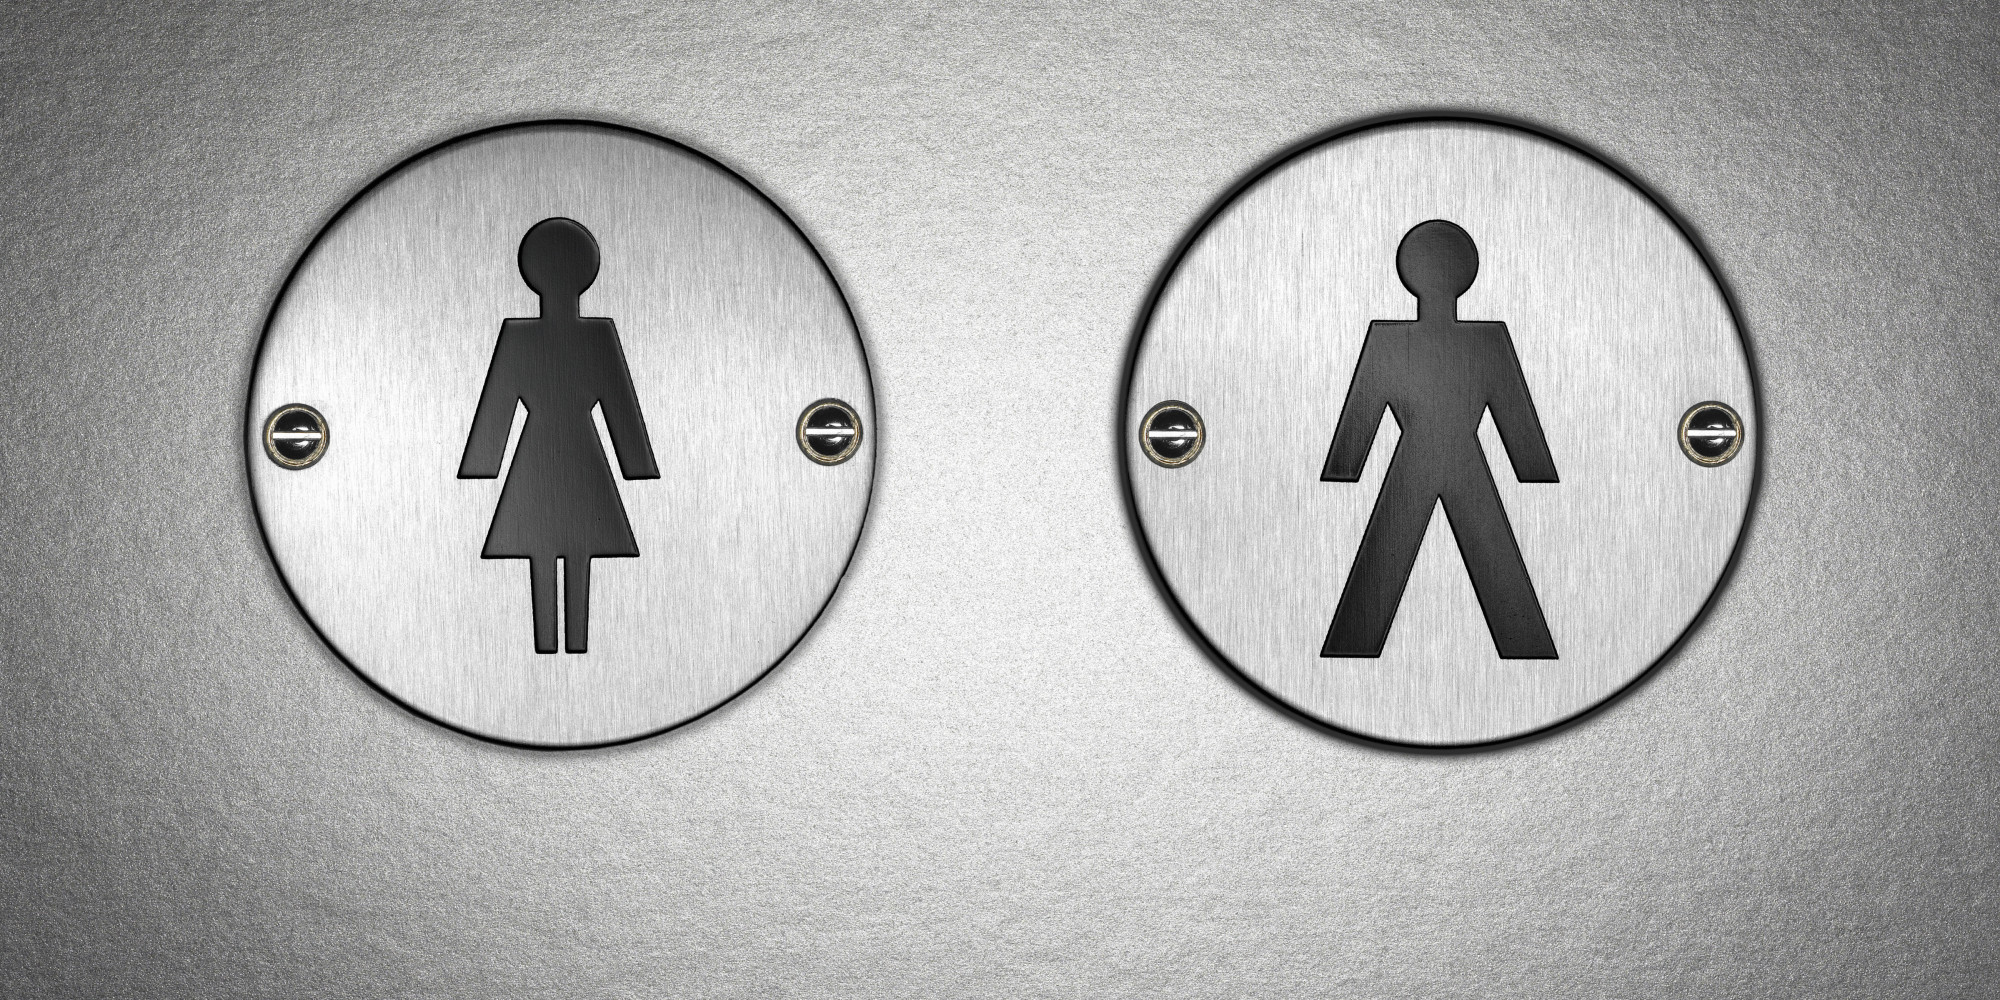 Bathroom Sign Texture debunking bathroom myths | huffpost